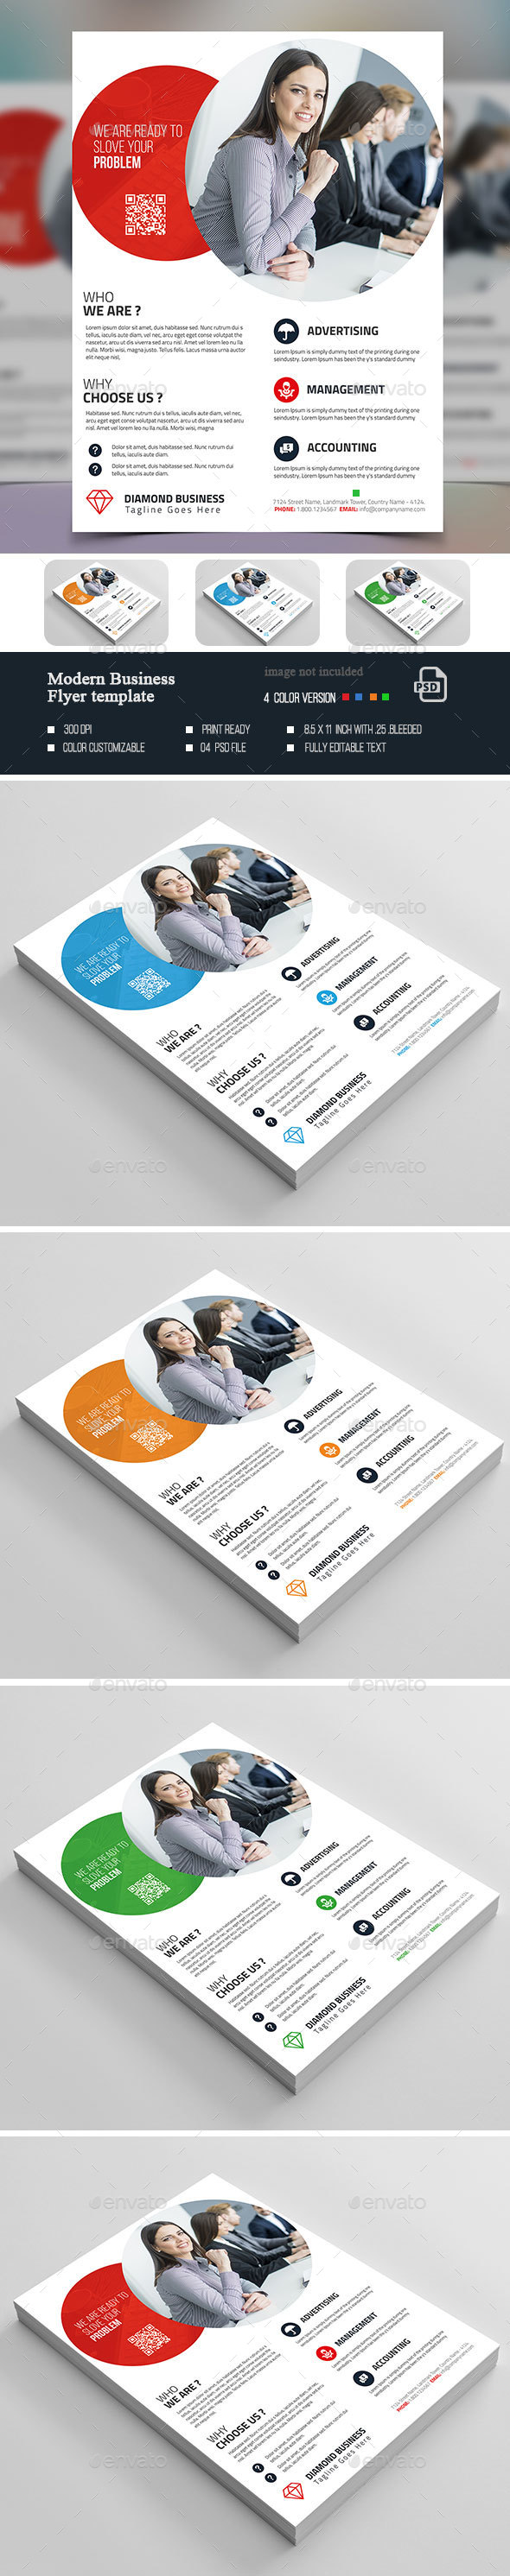 Modern Flyer Template - Corporate Flyers